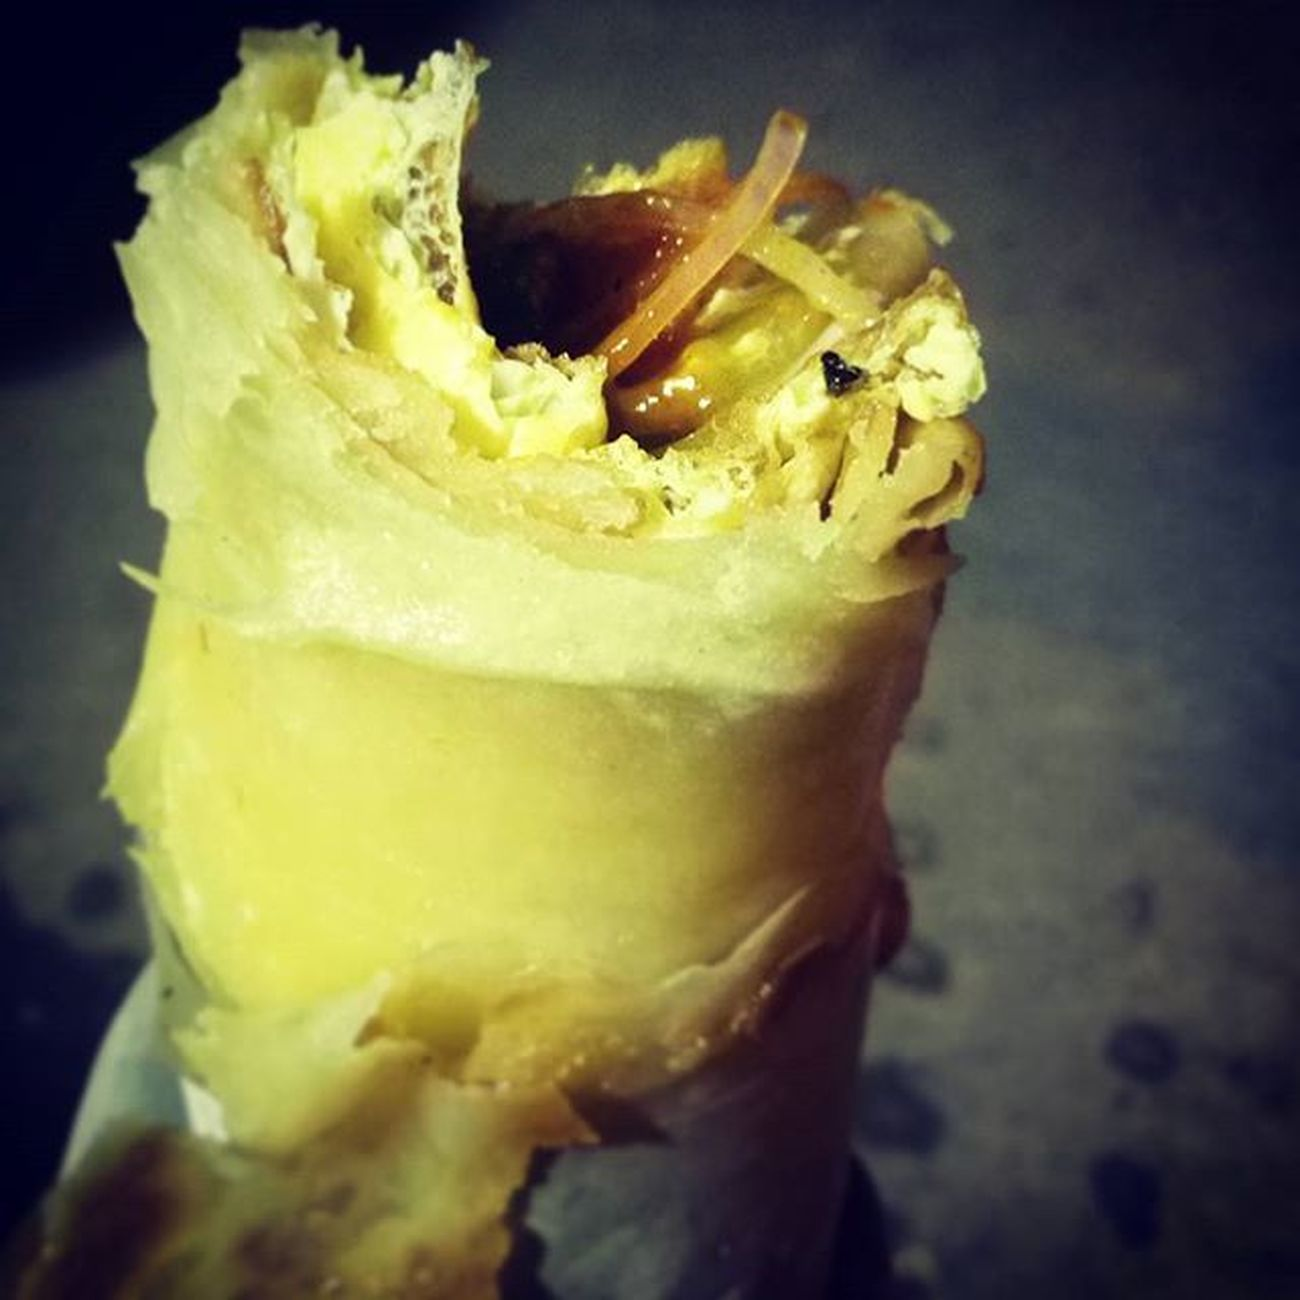 Oooo itz hawttt 😁😁😁 My today's cheat food... Yummy Double Egg roll 😝😜😘😘😘 Food JUNKFOOD Cheatmeal Fit Fitness Sexybodymissions Dude Egg Rolls Streetfood Yummy Feelsogood Fry Chapati Omlette Craziness Beards Trancefamily Tranceartist Trance Music Myworld Indiantrance AlwaysTrance TheMelodicMaestro 😏💙🎵